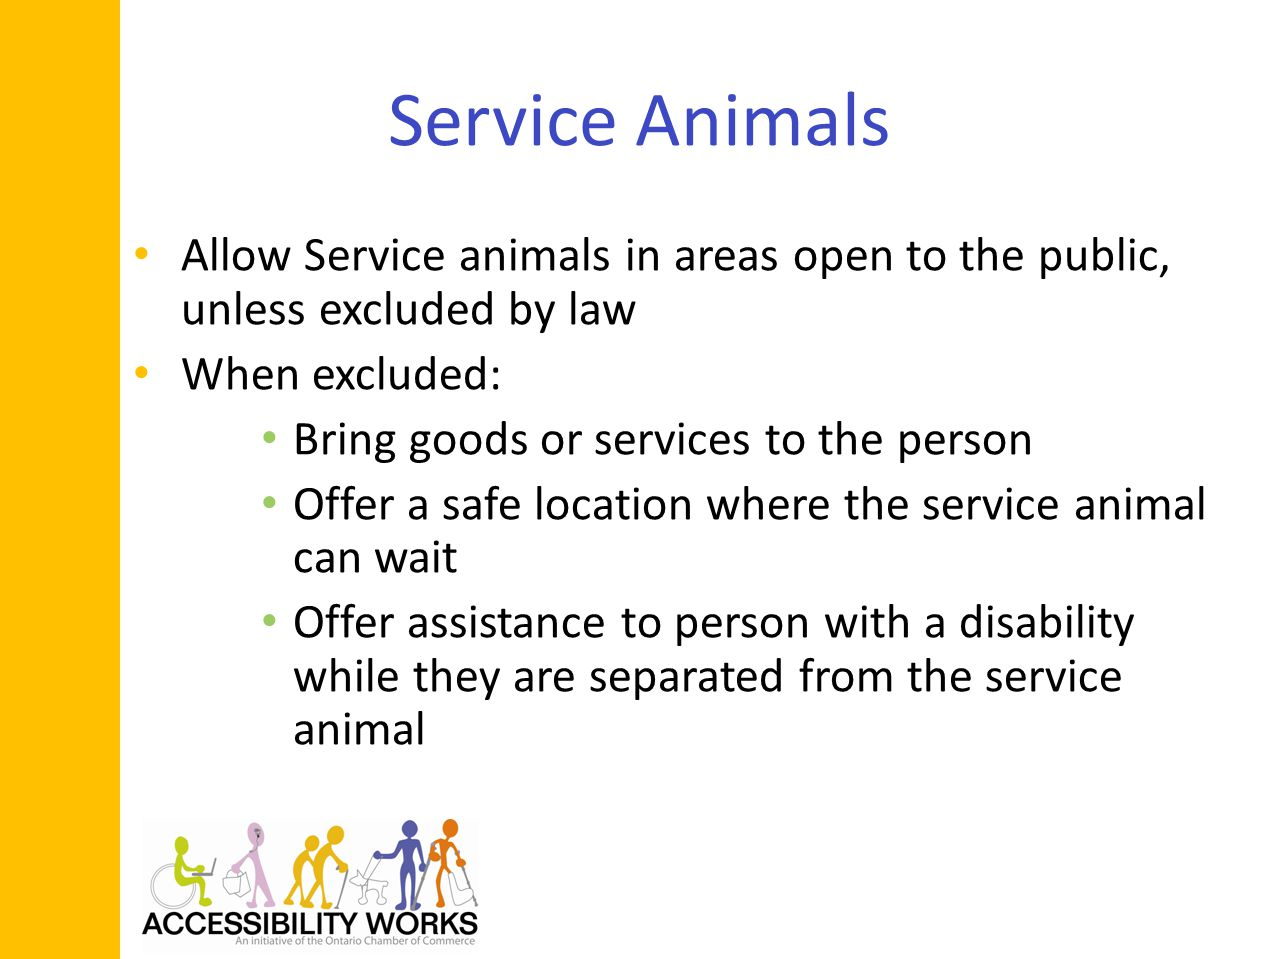 Service Animals Allow Service animals in areas open to the public, unless excluded by law When excluded: Bring goods or services to the person Offer a safe location where the service animal can wait Offer assistance to person with a disability while they are separated from the service animal